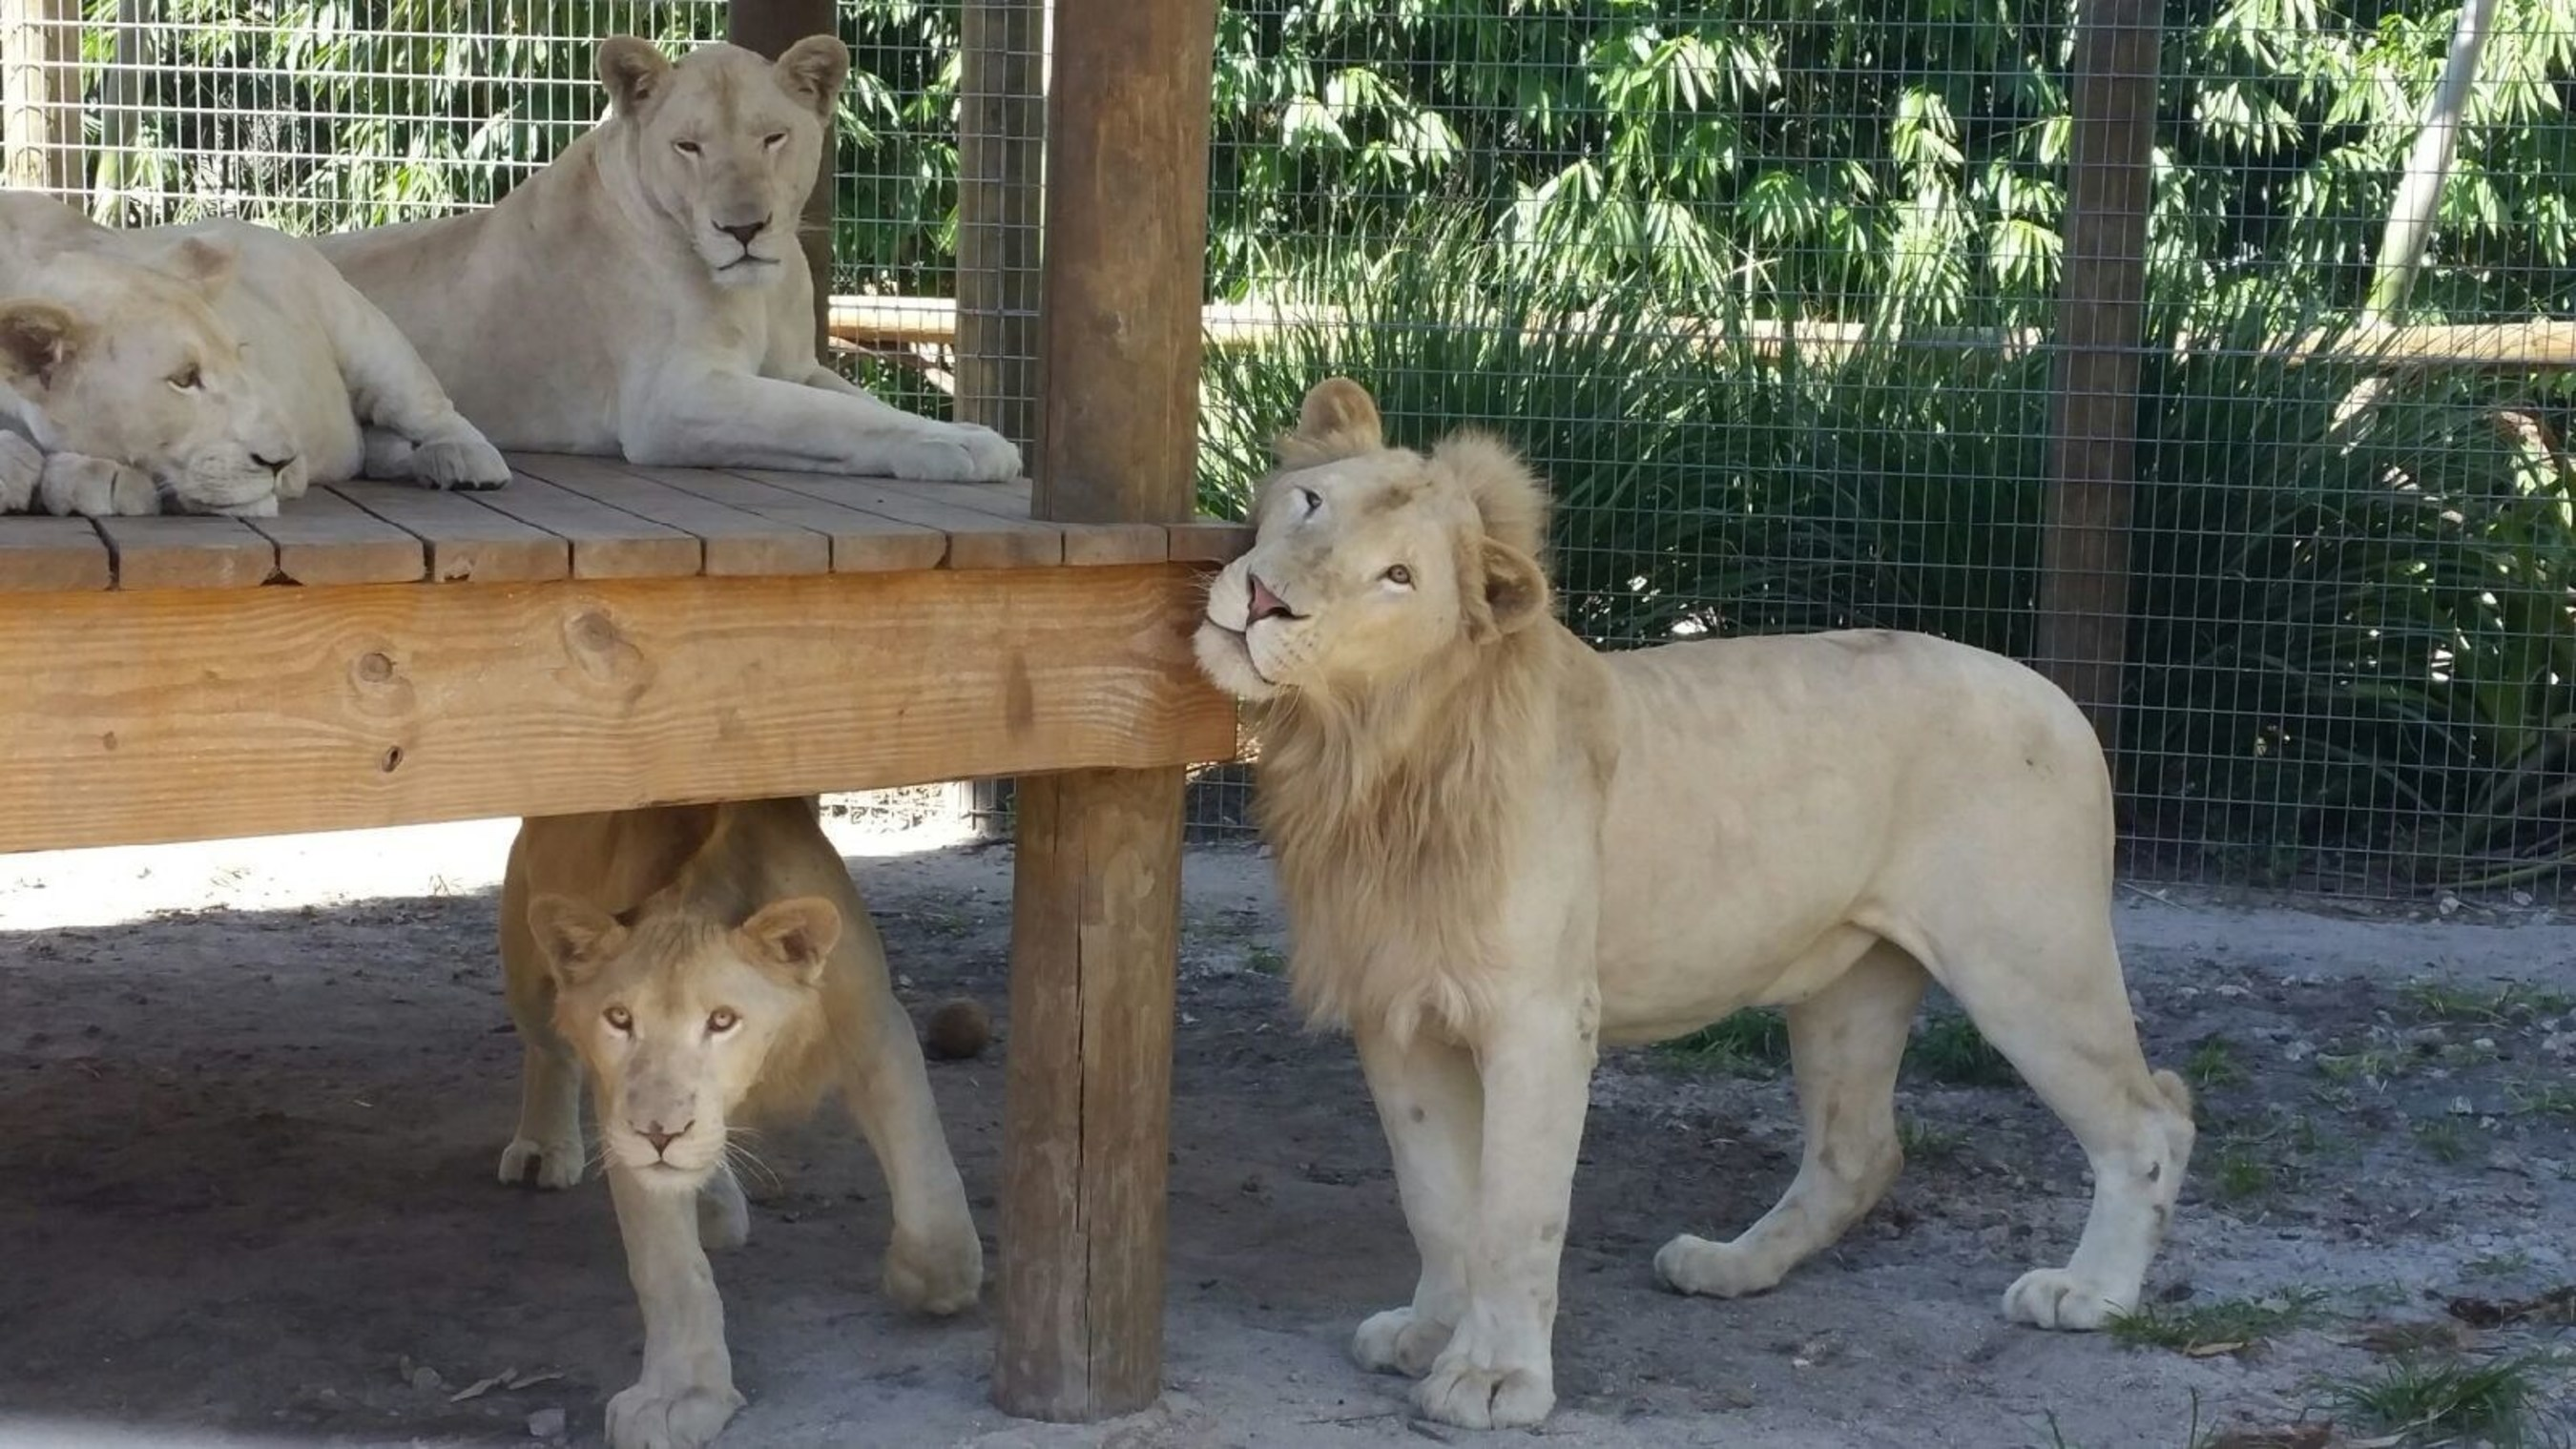 Zoological Wildlife Foundation Shines A Light On White Lion Conservation Efforts